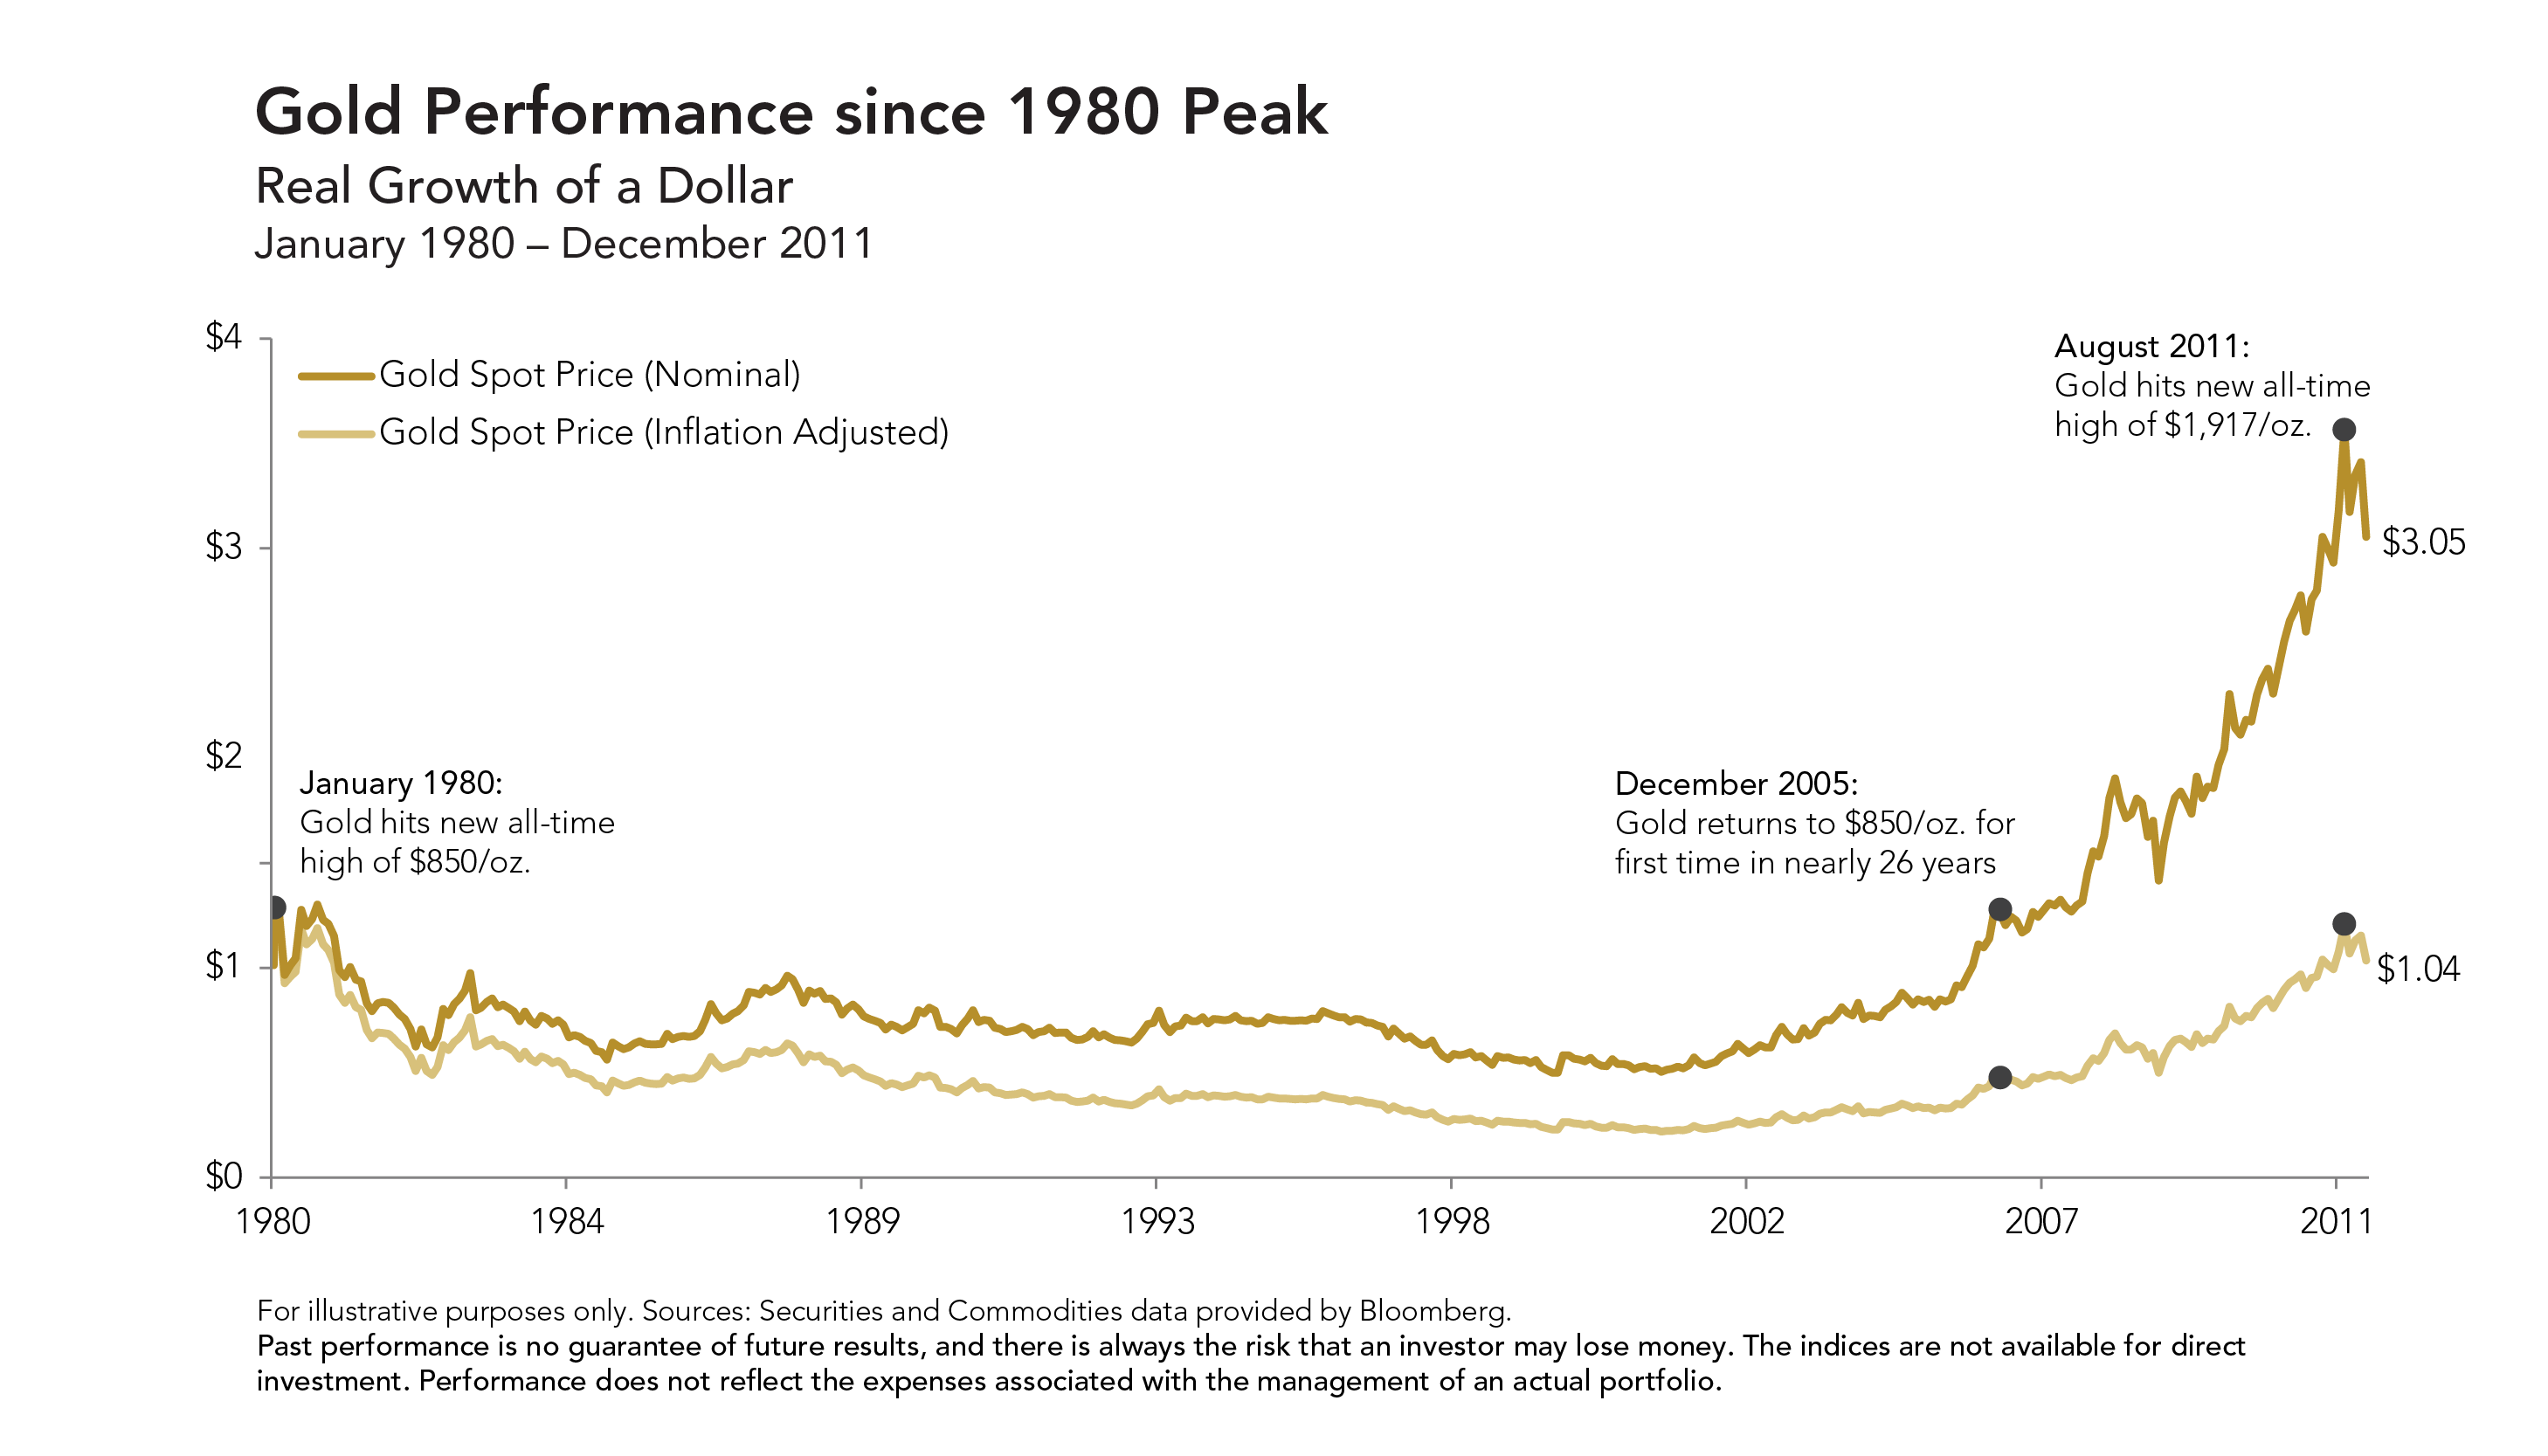 Fig 5 Gold Performance since 1980 Peak